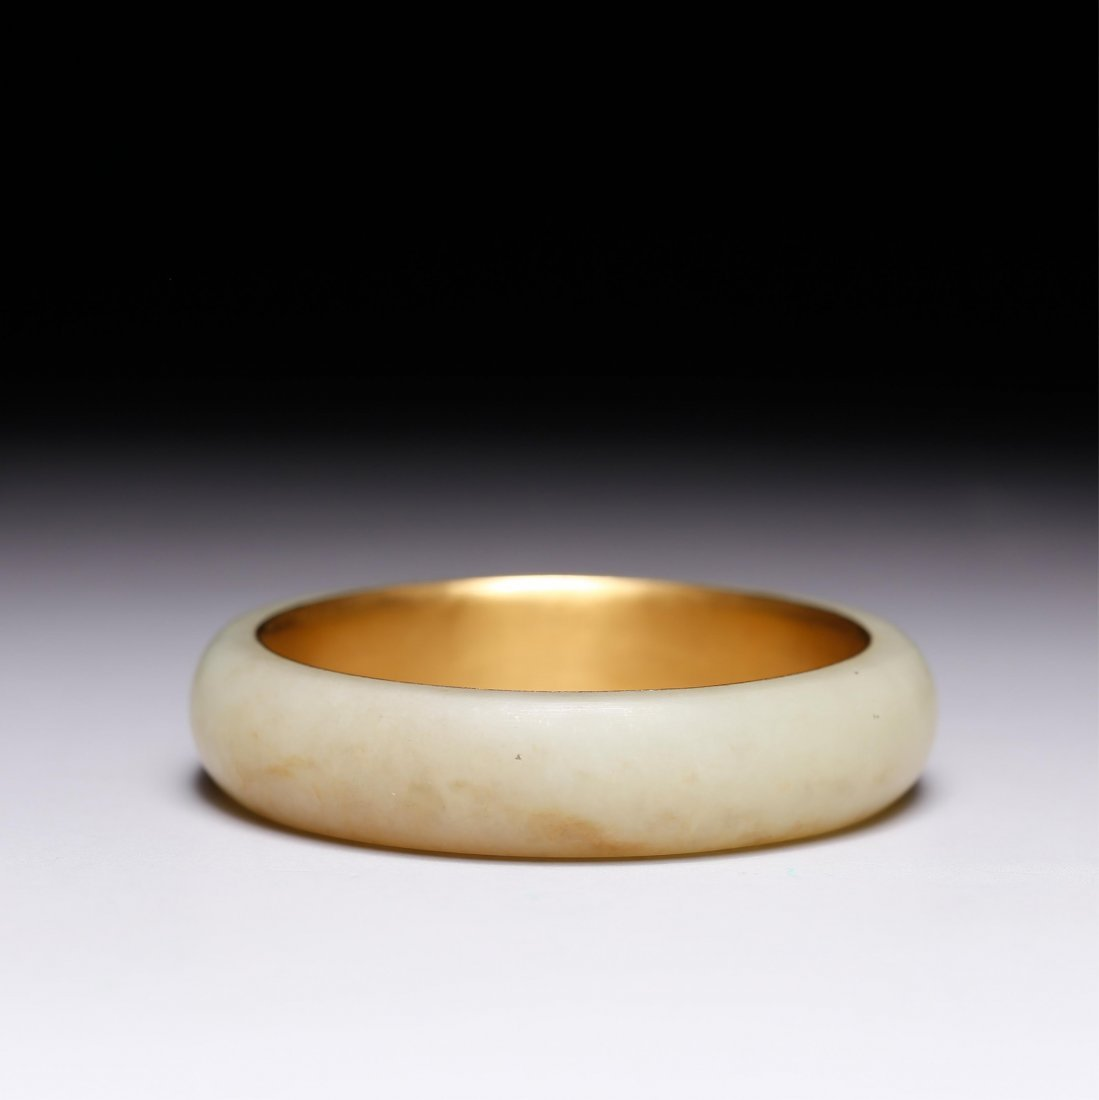 CHINESE GOLD AND YELLOW JADE BANGLE - 9